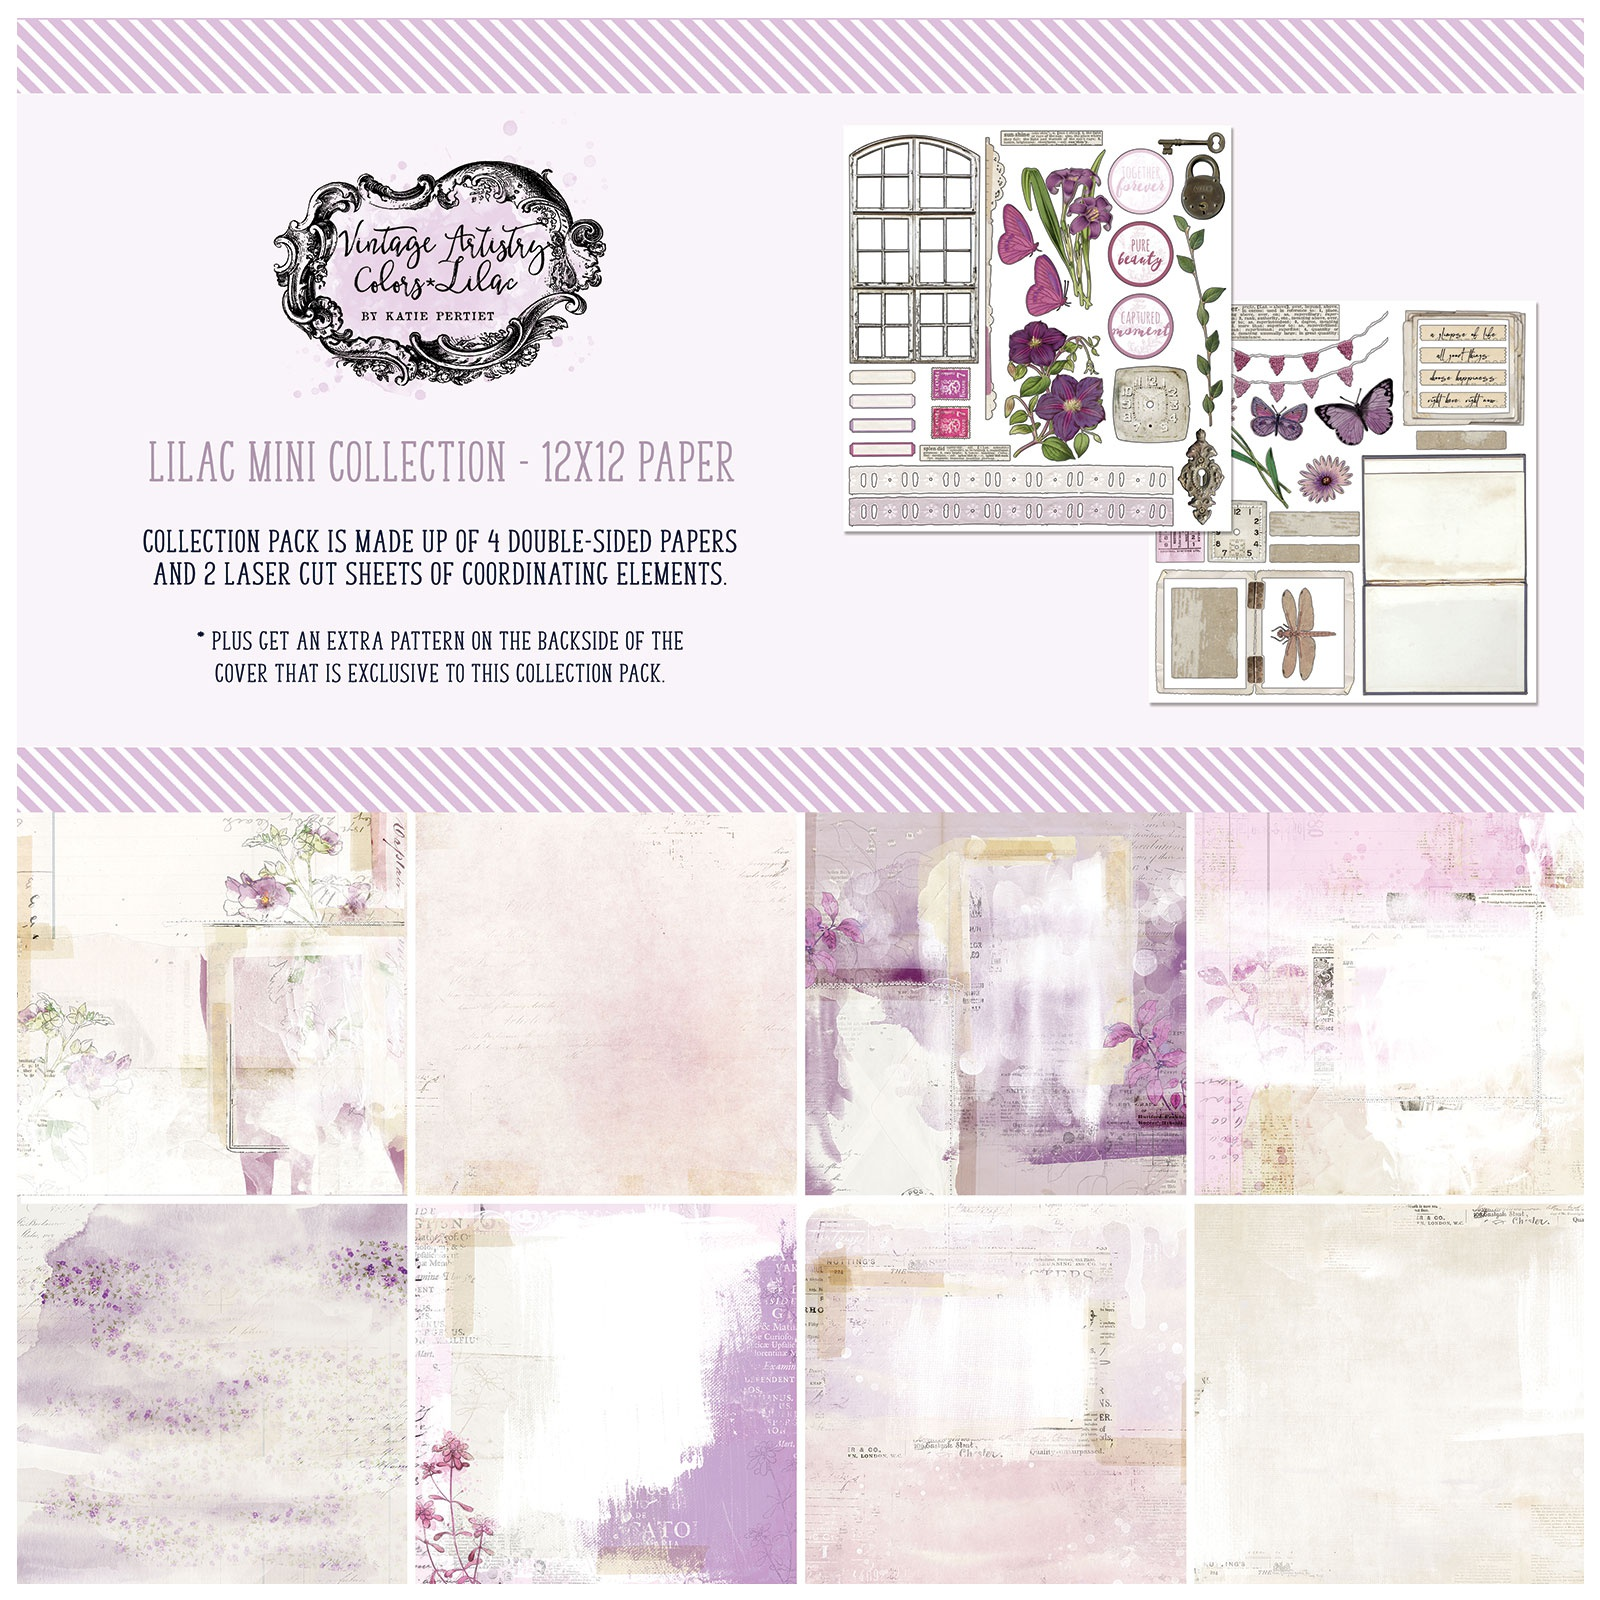 49 And Market Collection Pack 12X12-Vintage Artistry Lilac